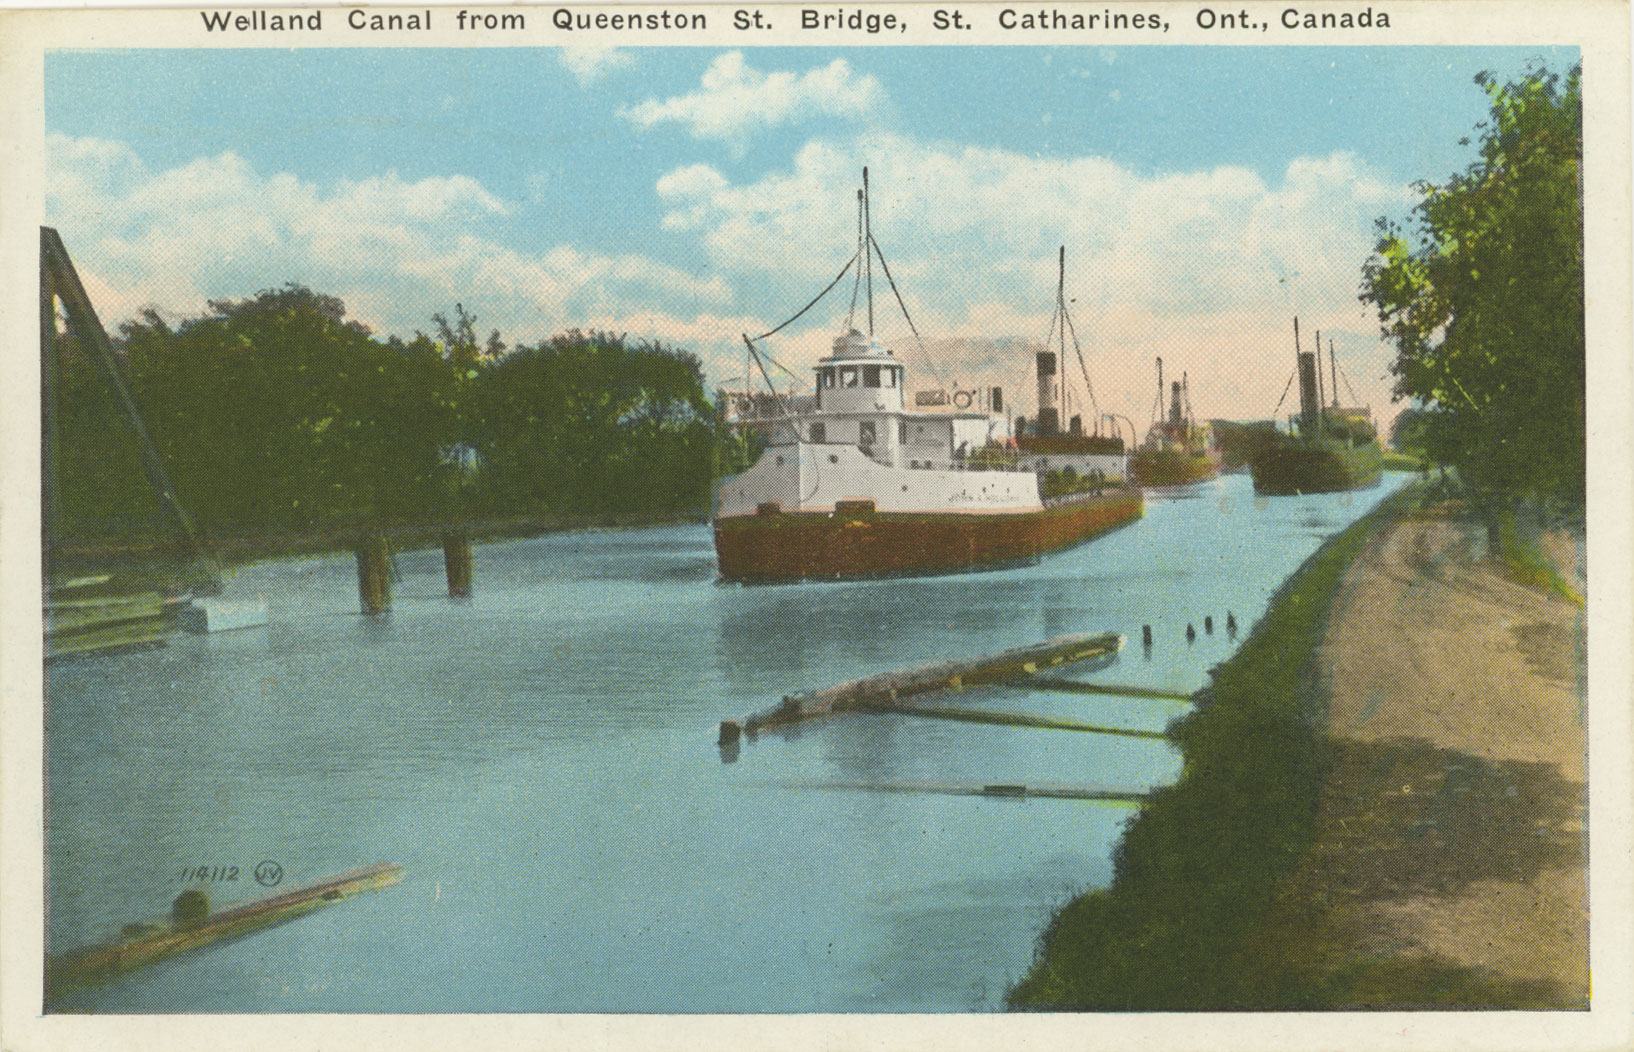 Welland Canal from Queenston St. Bridge, St. Catharines, Ont., Canada